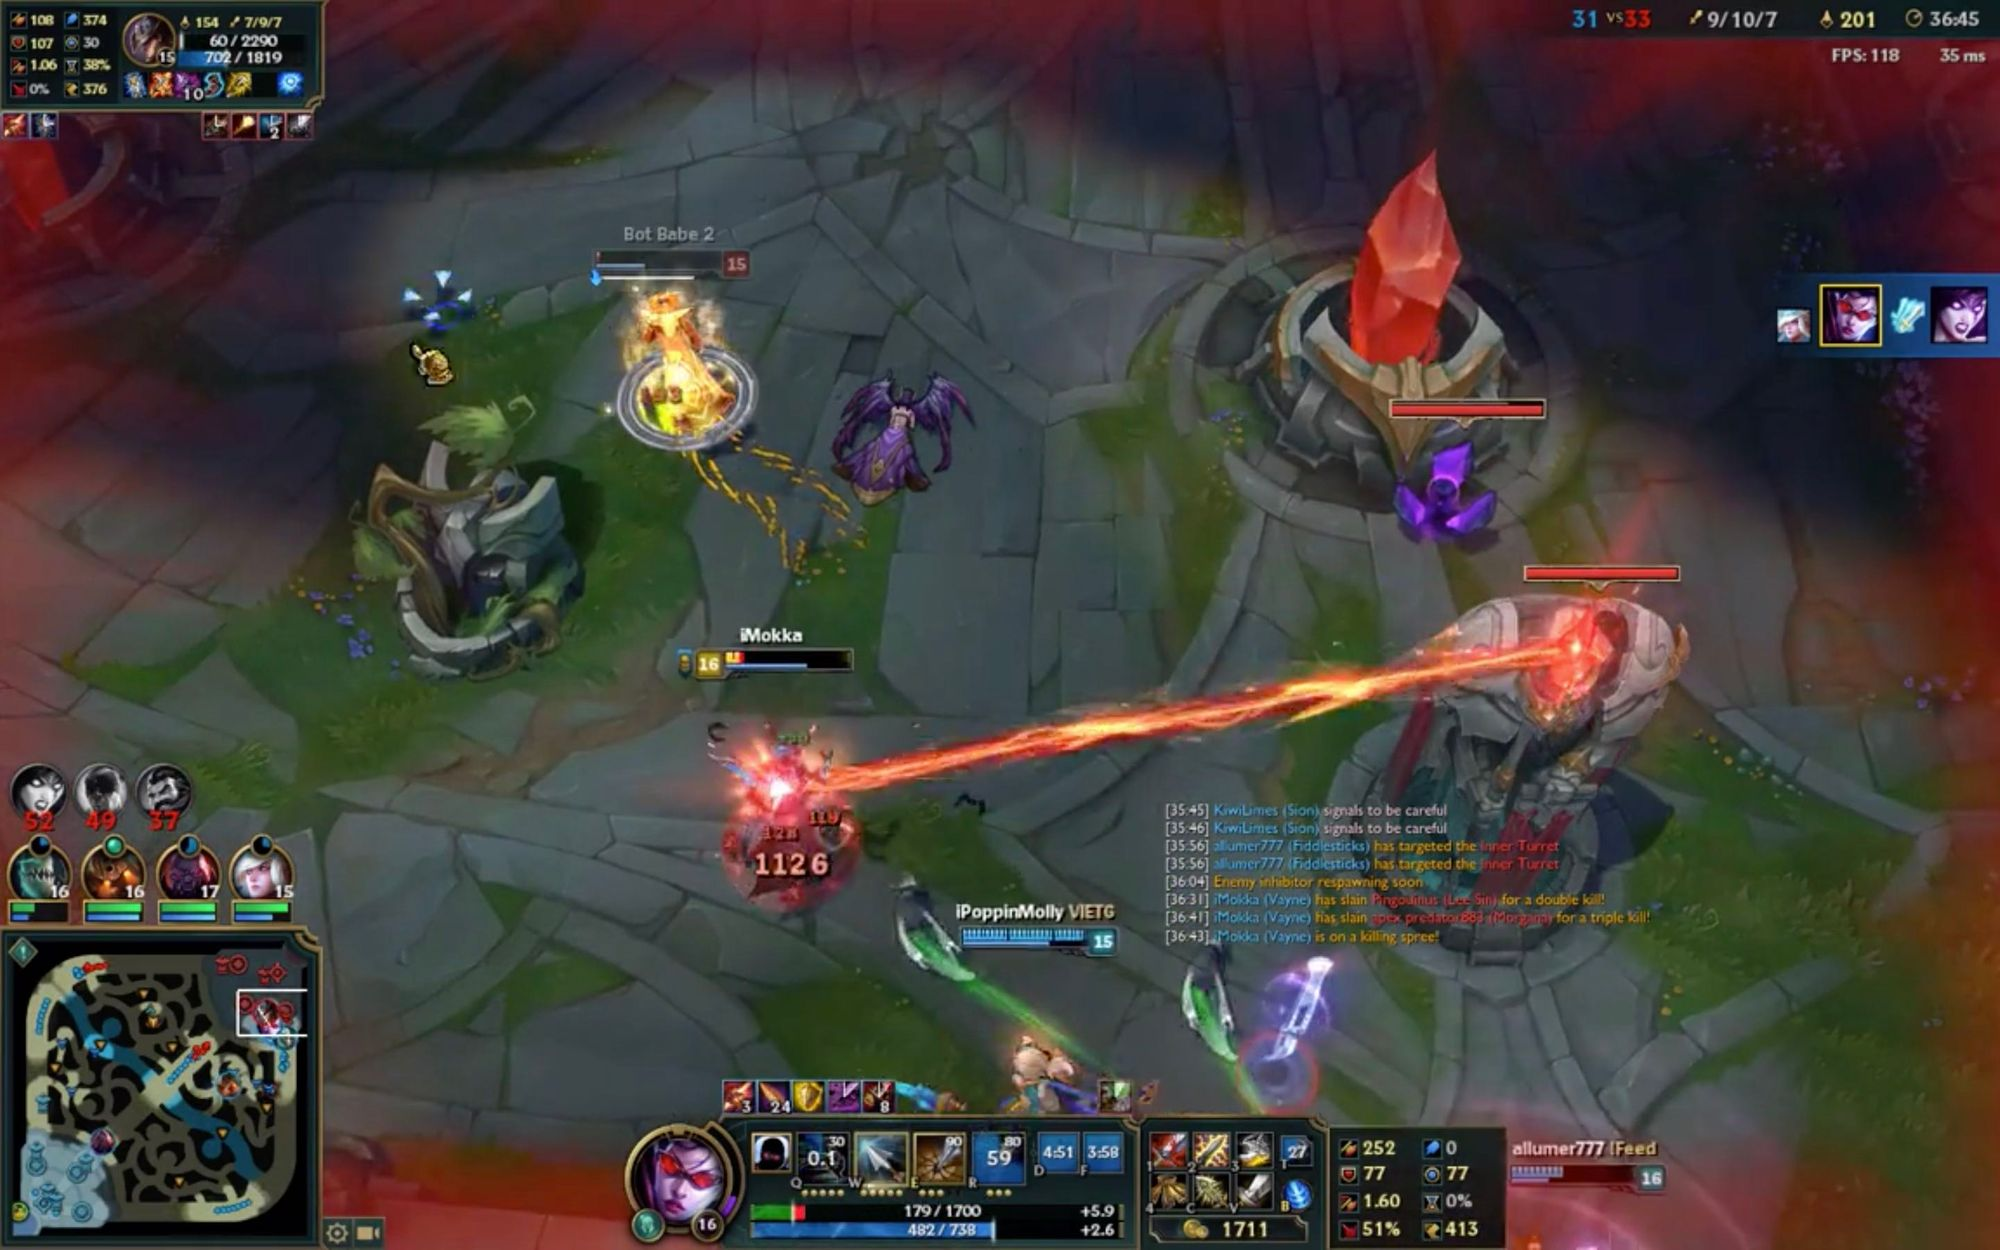 Champion gets attacked by the laser of inhibitor turret in League of Legends